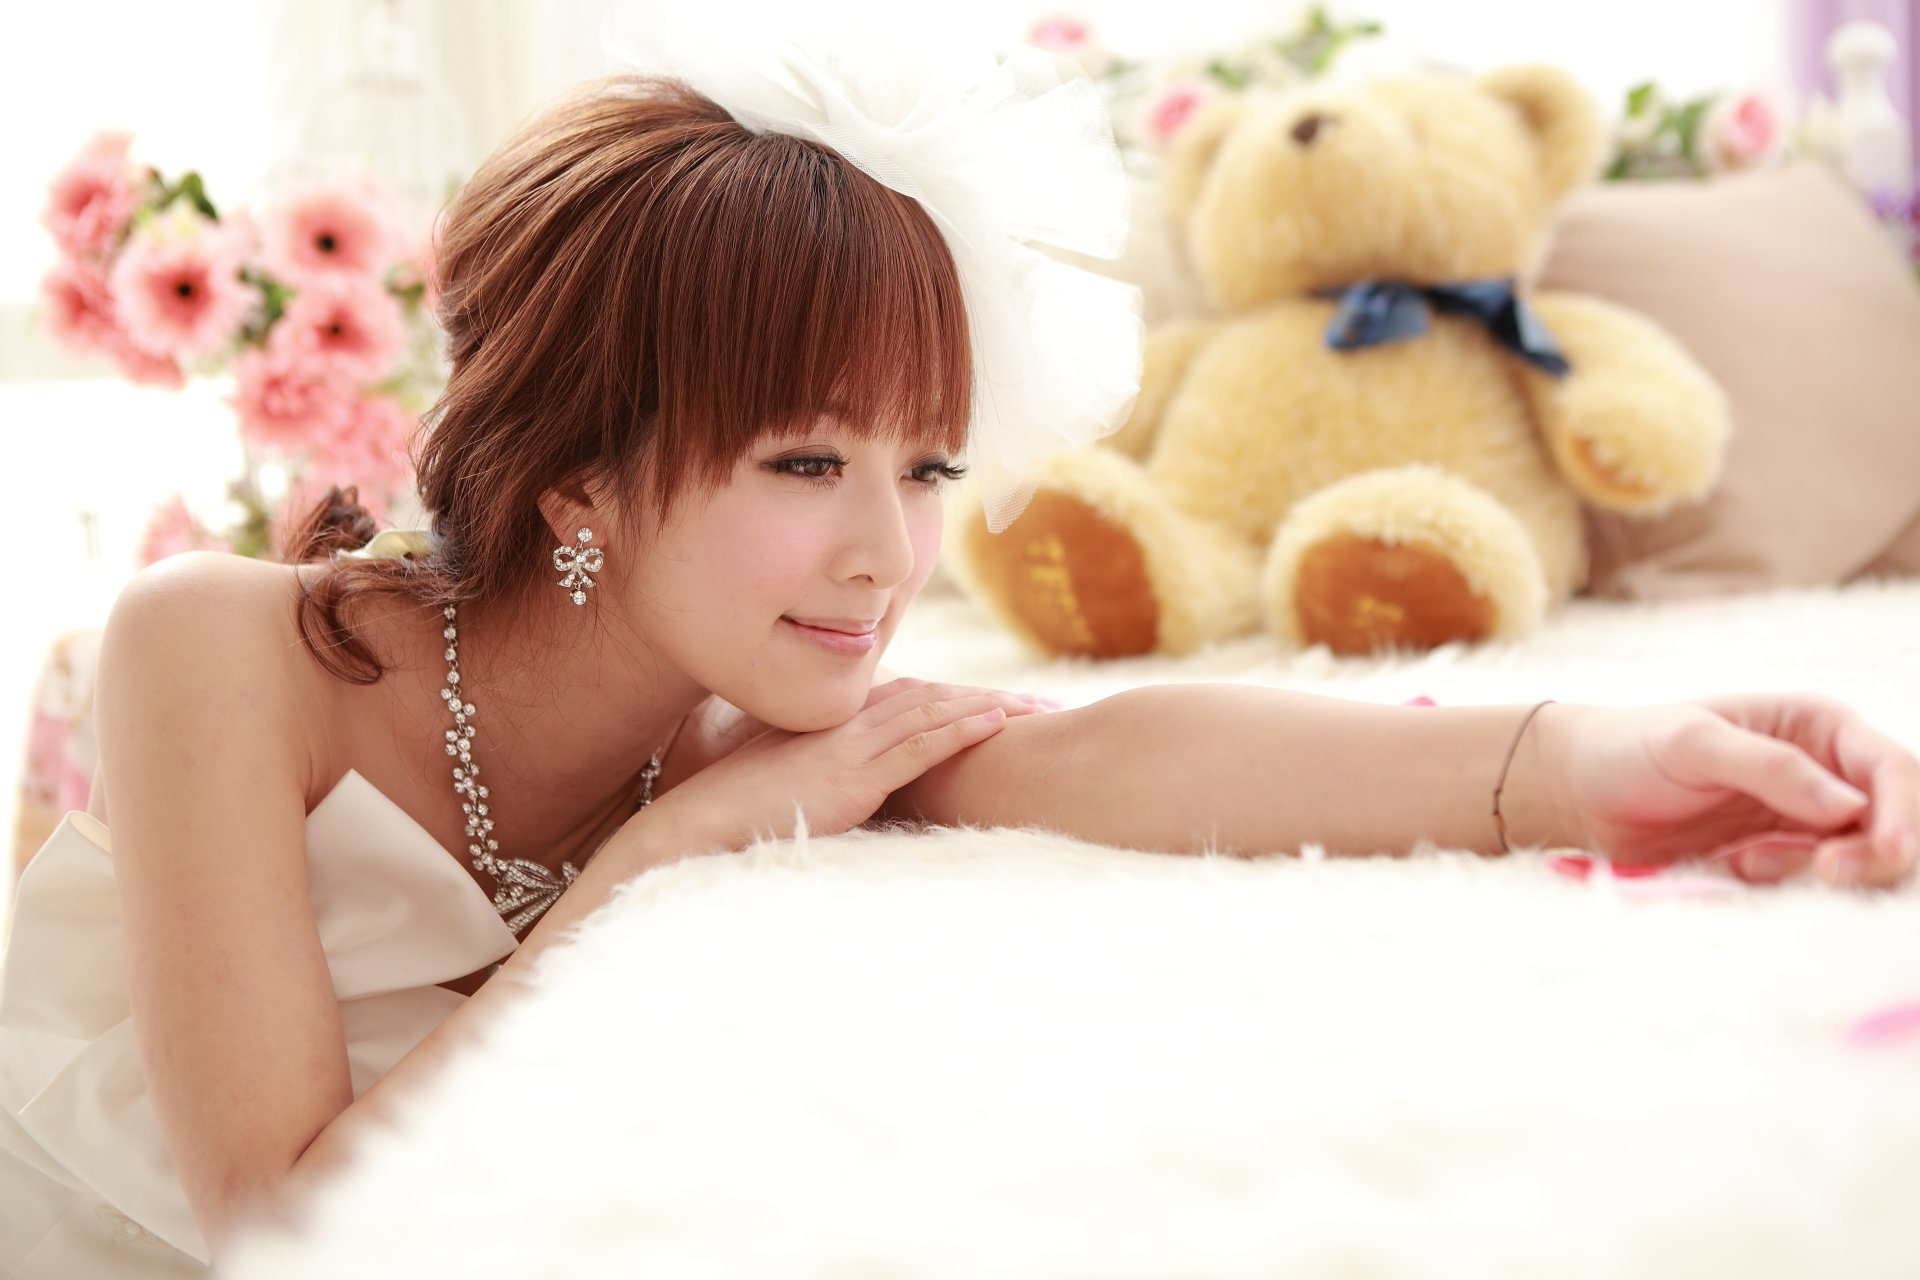 Women - Mikako Zhang Kaijie  Asian Smile Teddy Bear Dress Taiwanese Wallpaper